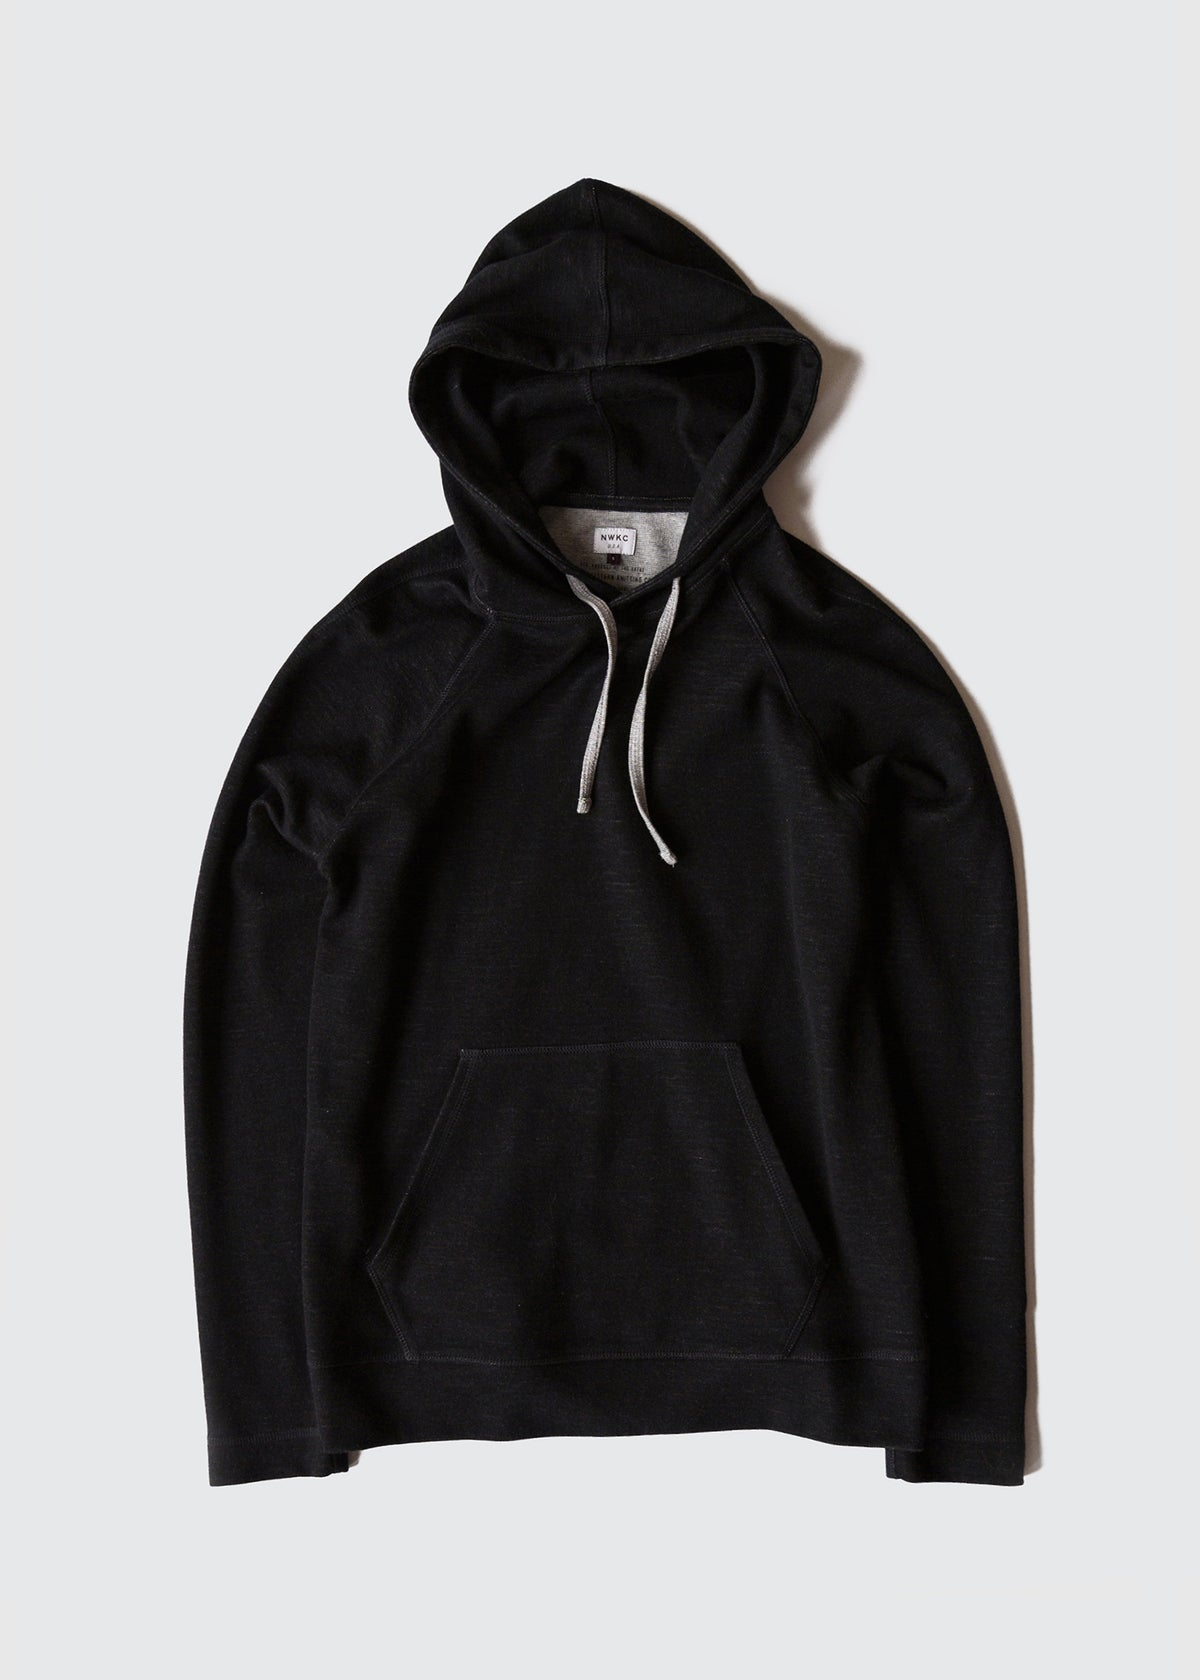 003 - PULLOVER - BLACK - Wilson & Willy's - MPLS Neighbor Goods